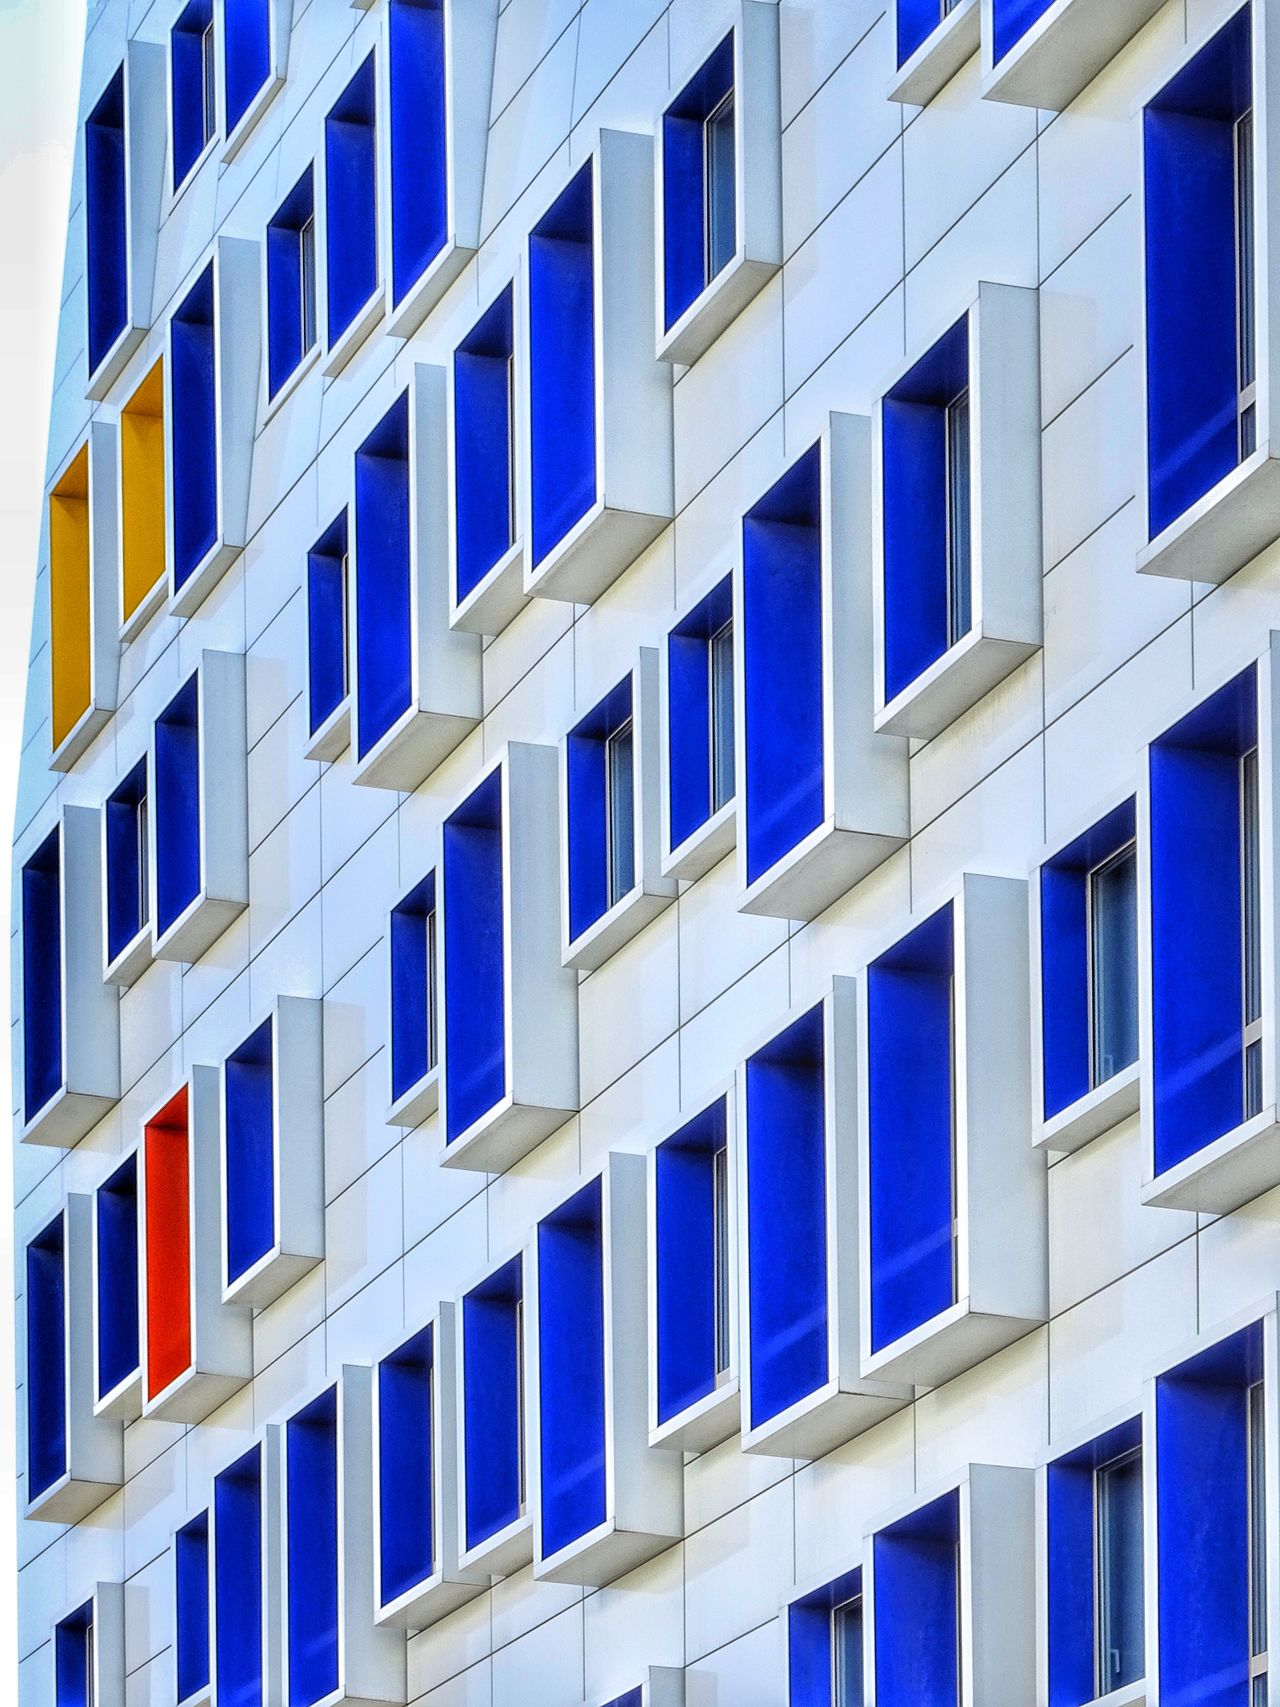 Window Building Exterior Architecture Outdoors In A Row Built Structure Day No People Close-up EyeEm Multi Colored Colors Streetphoto_color Street Photography City Architecture Eyeem Colors Balcony Eyeem Color Photos🌈 Marseille La Belle Blue White And Blue